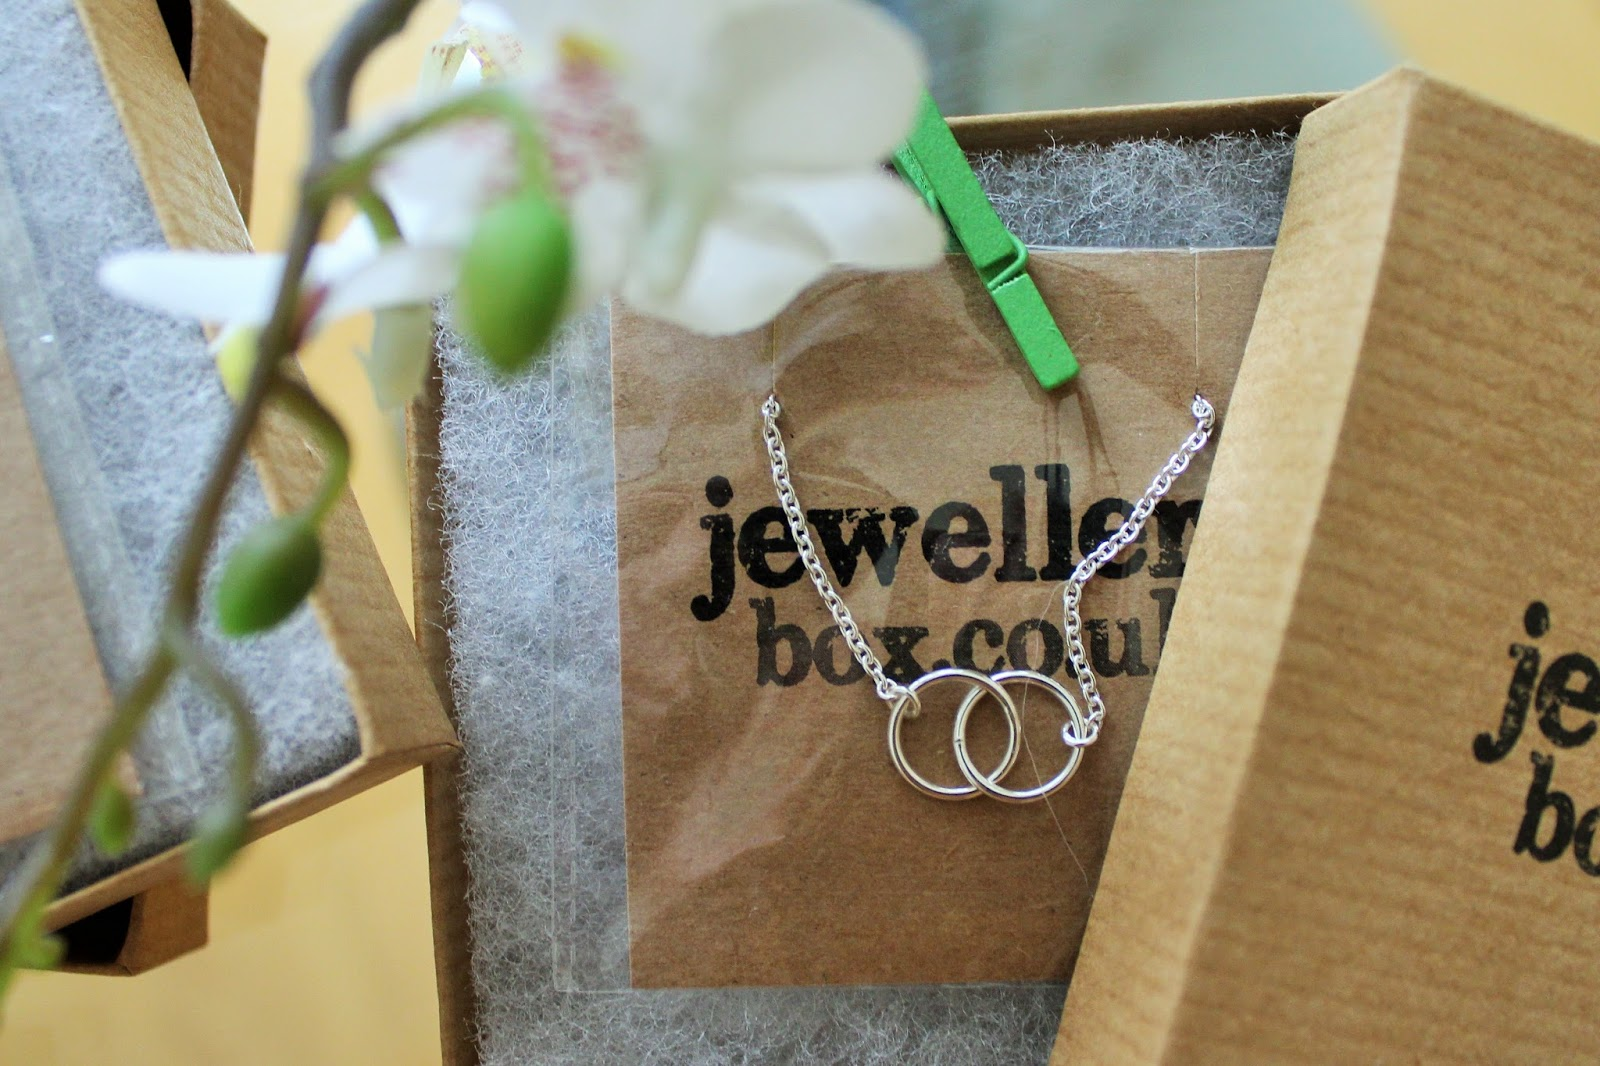 JewelleryBox.co.uk 5